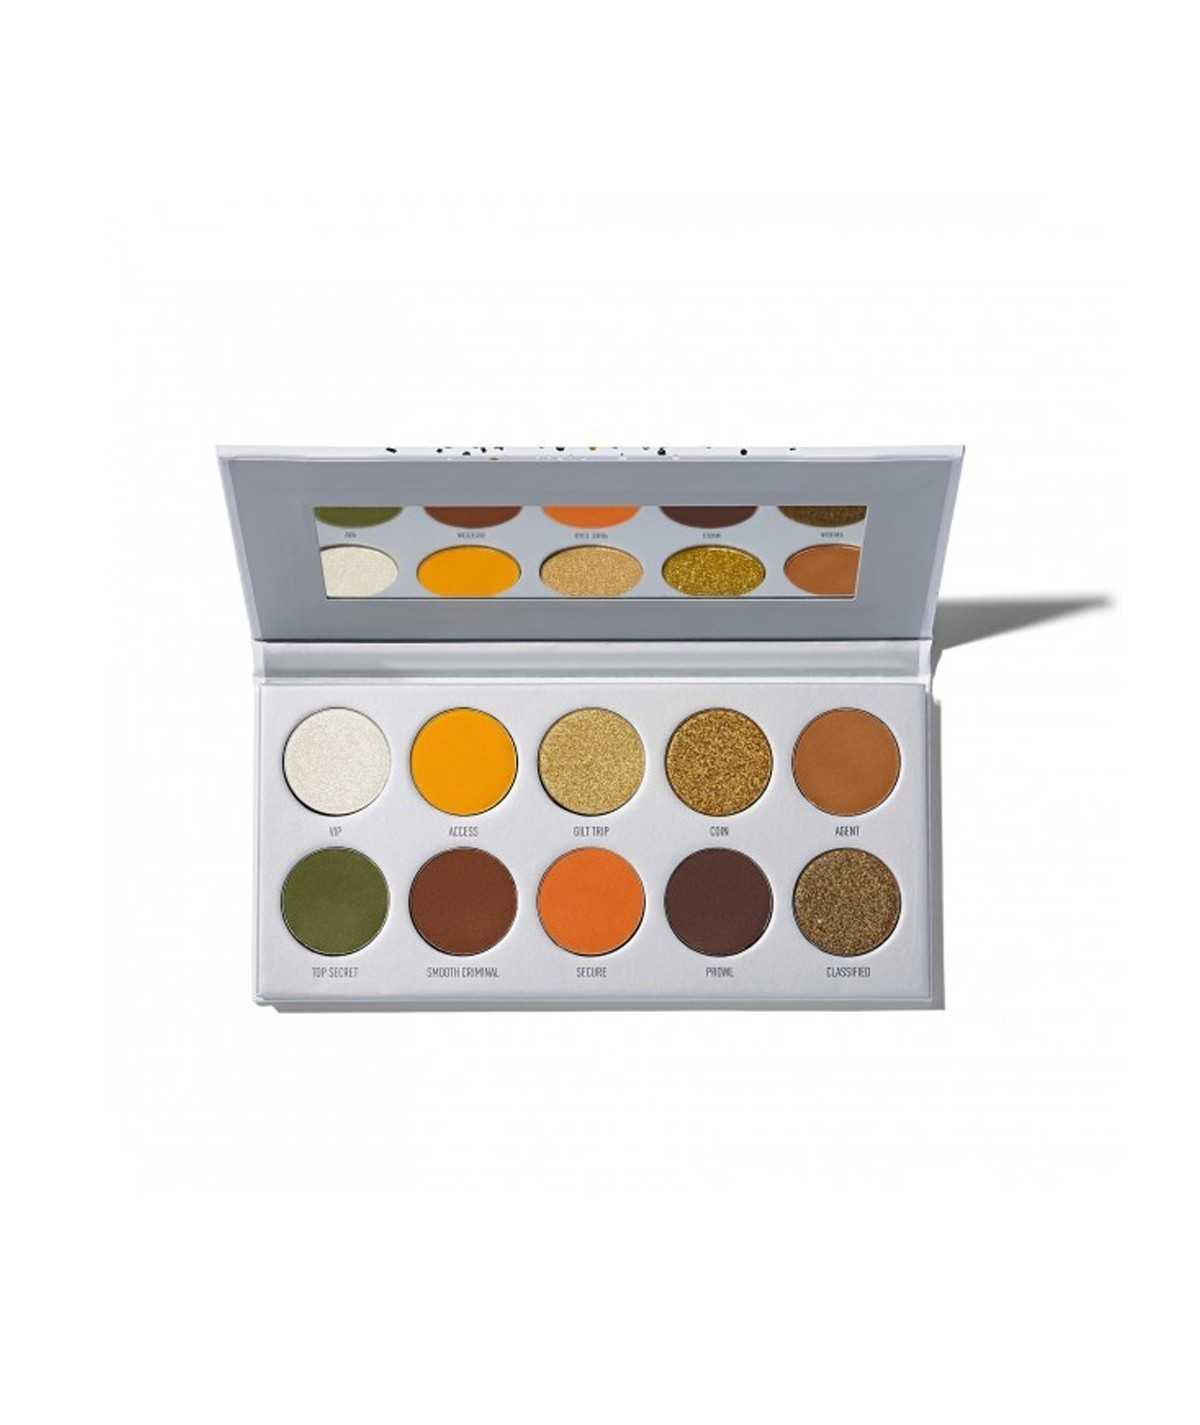 Morphe Jaclyn Hill The Vault Palette - Armed & Gorgeous